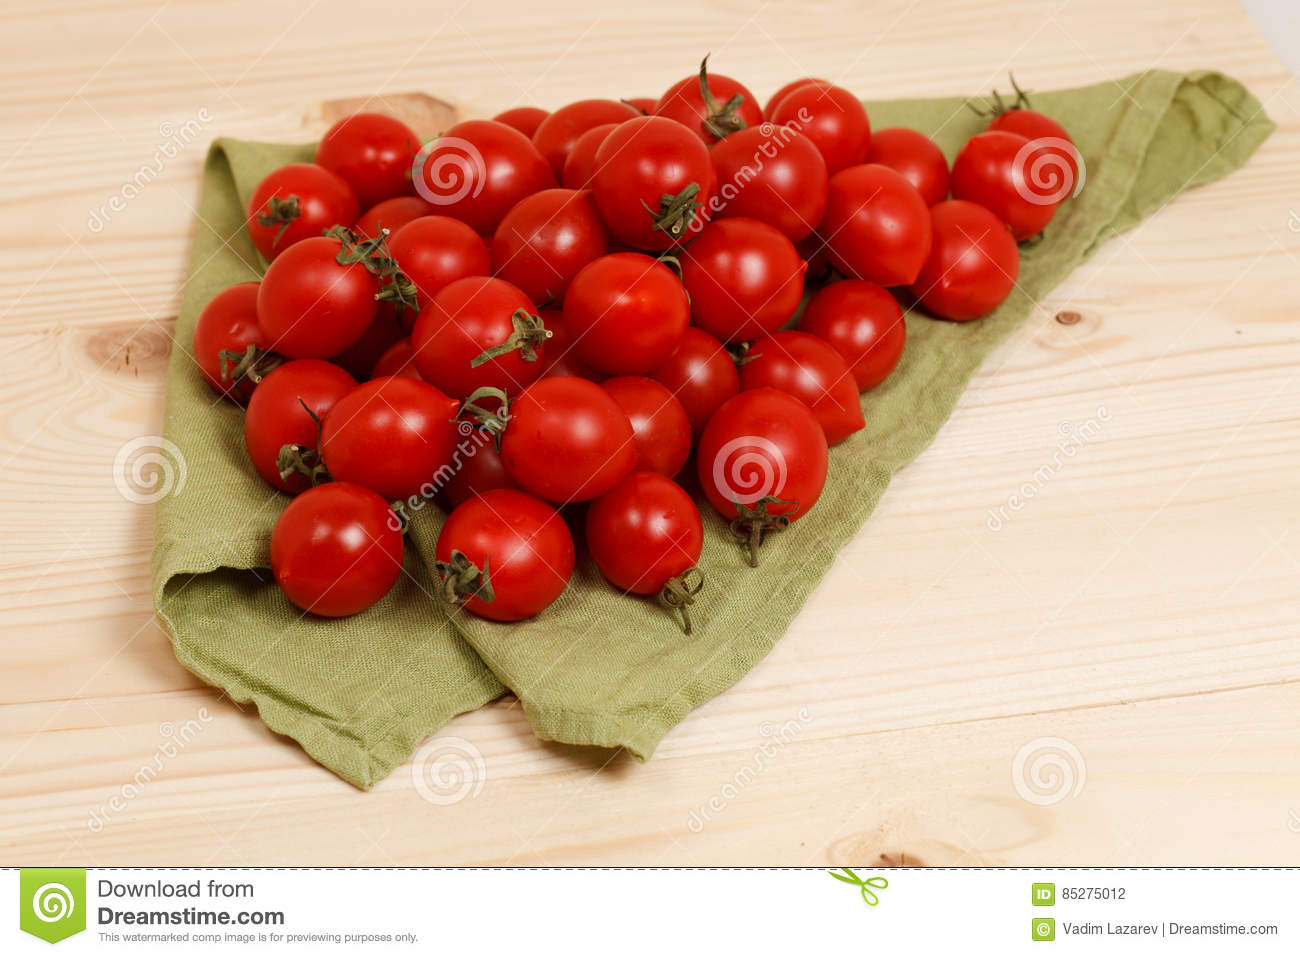 tomatoes on green fabric wooden background